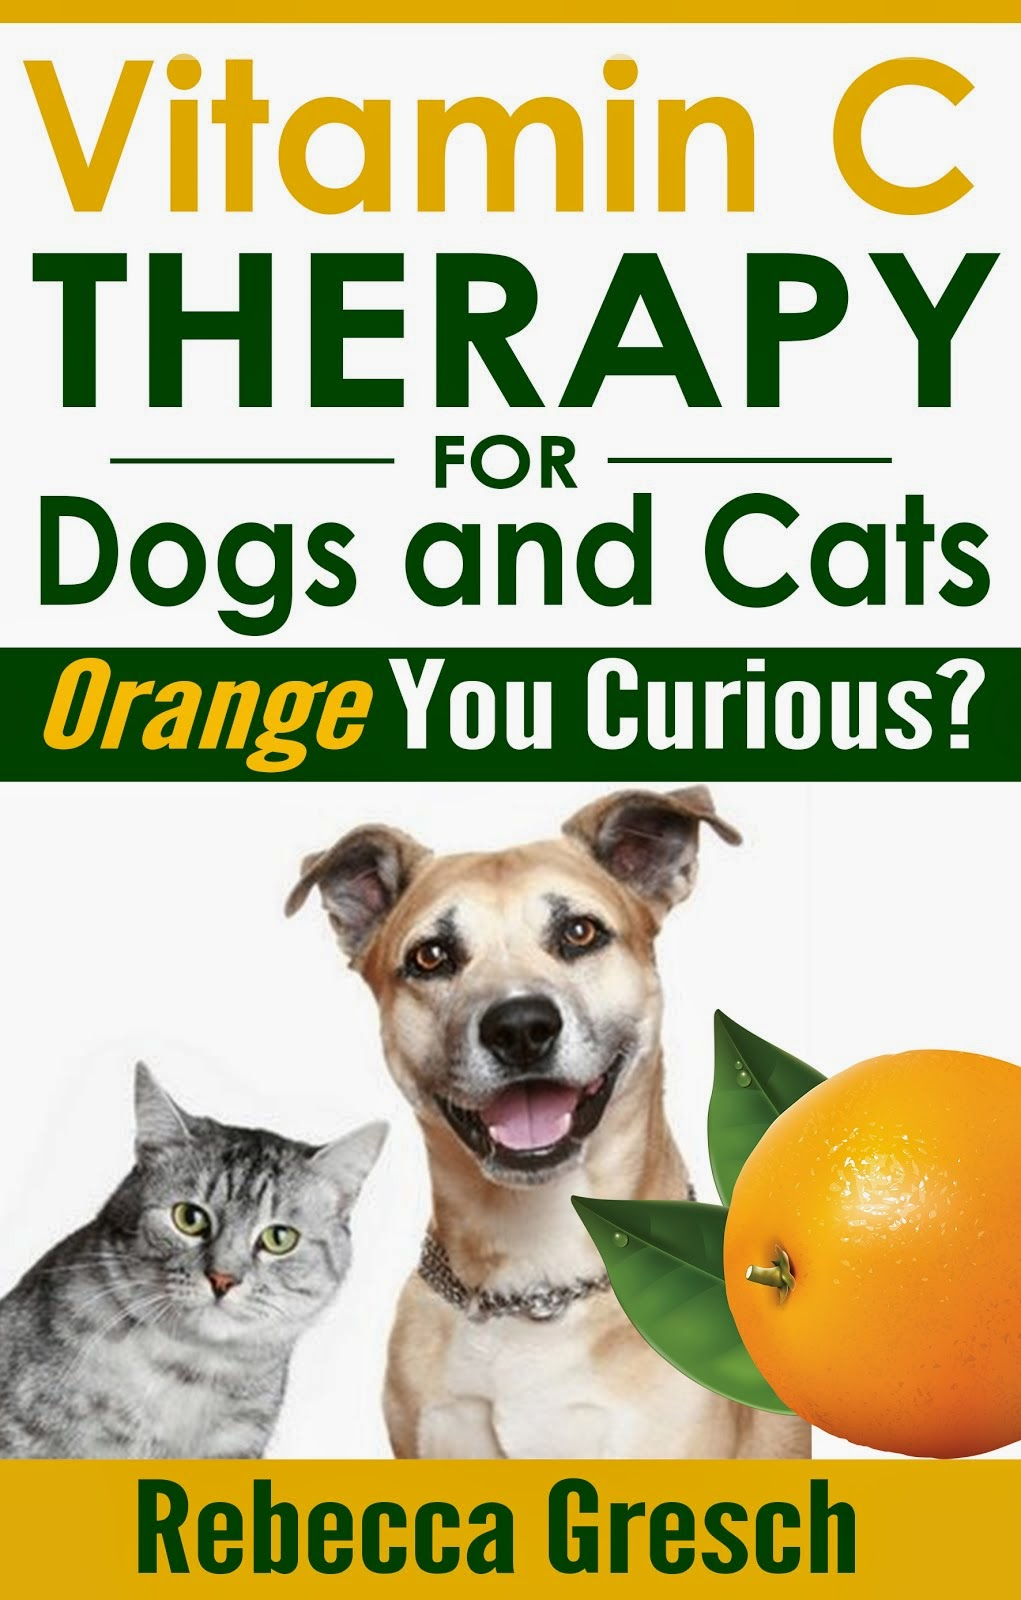 Vitamin C Therapy for Dogs and Cats